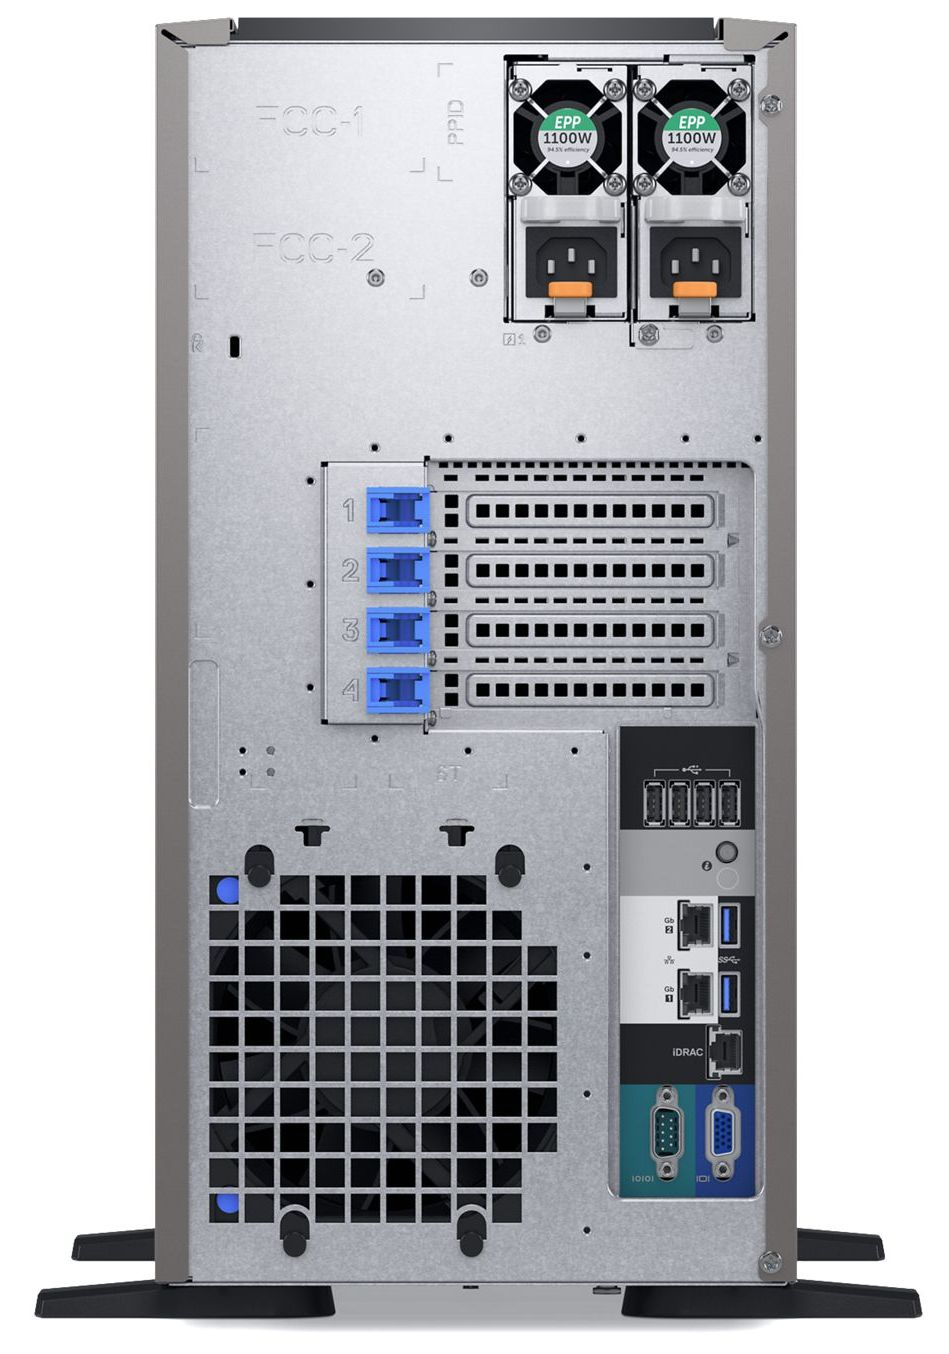 Dell EMC PowerEdge T340 Rear